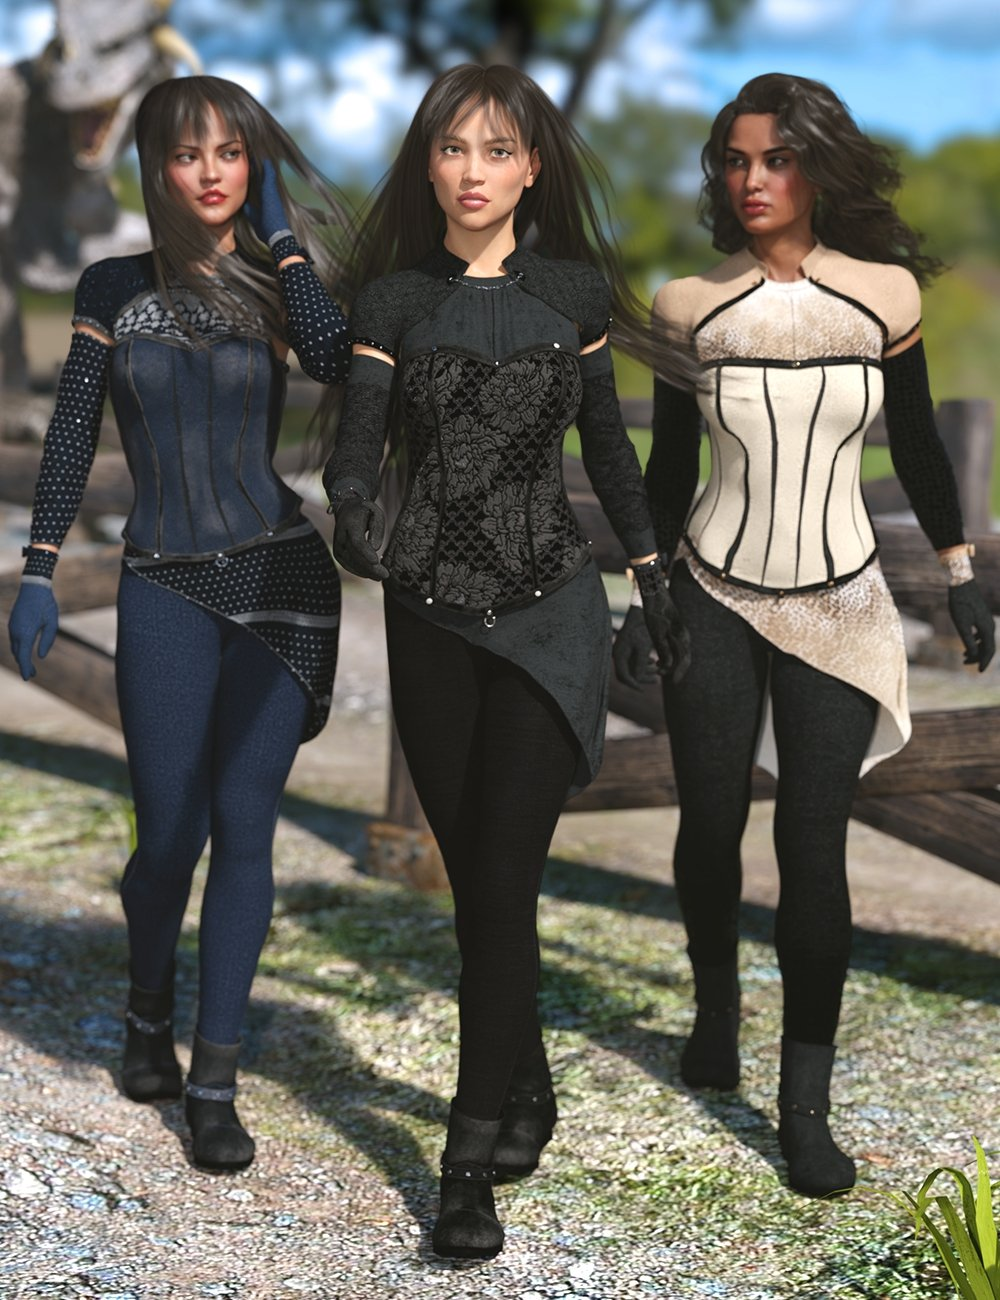 Blackwood Outfit: Taylor Textures by: Lyoness, 3D Models by Daz 3D